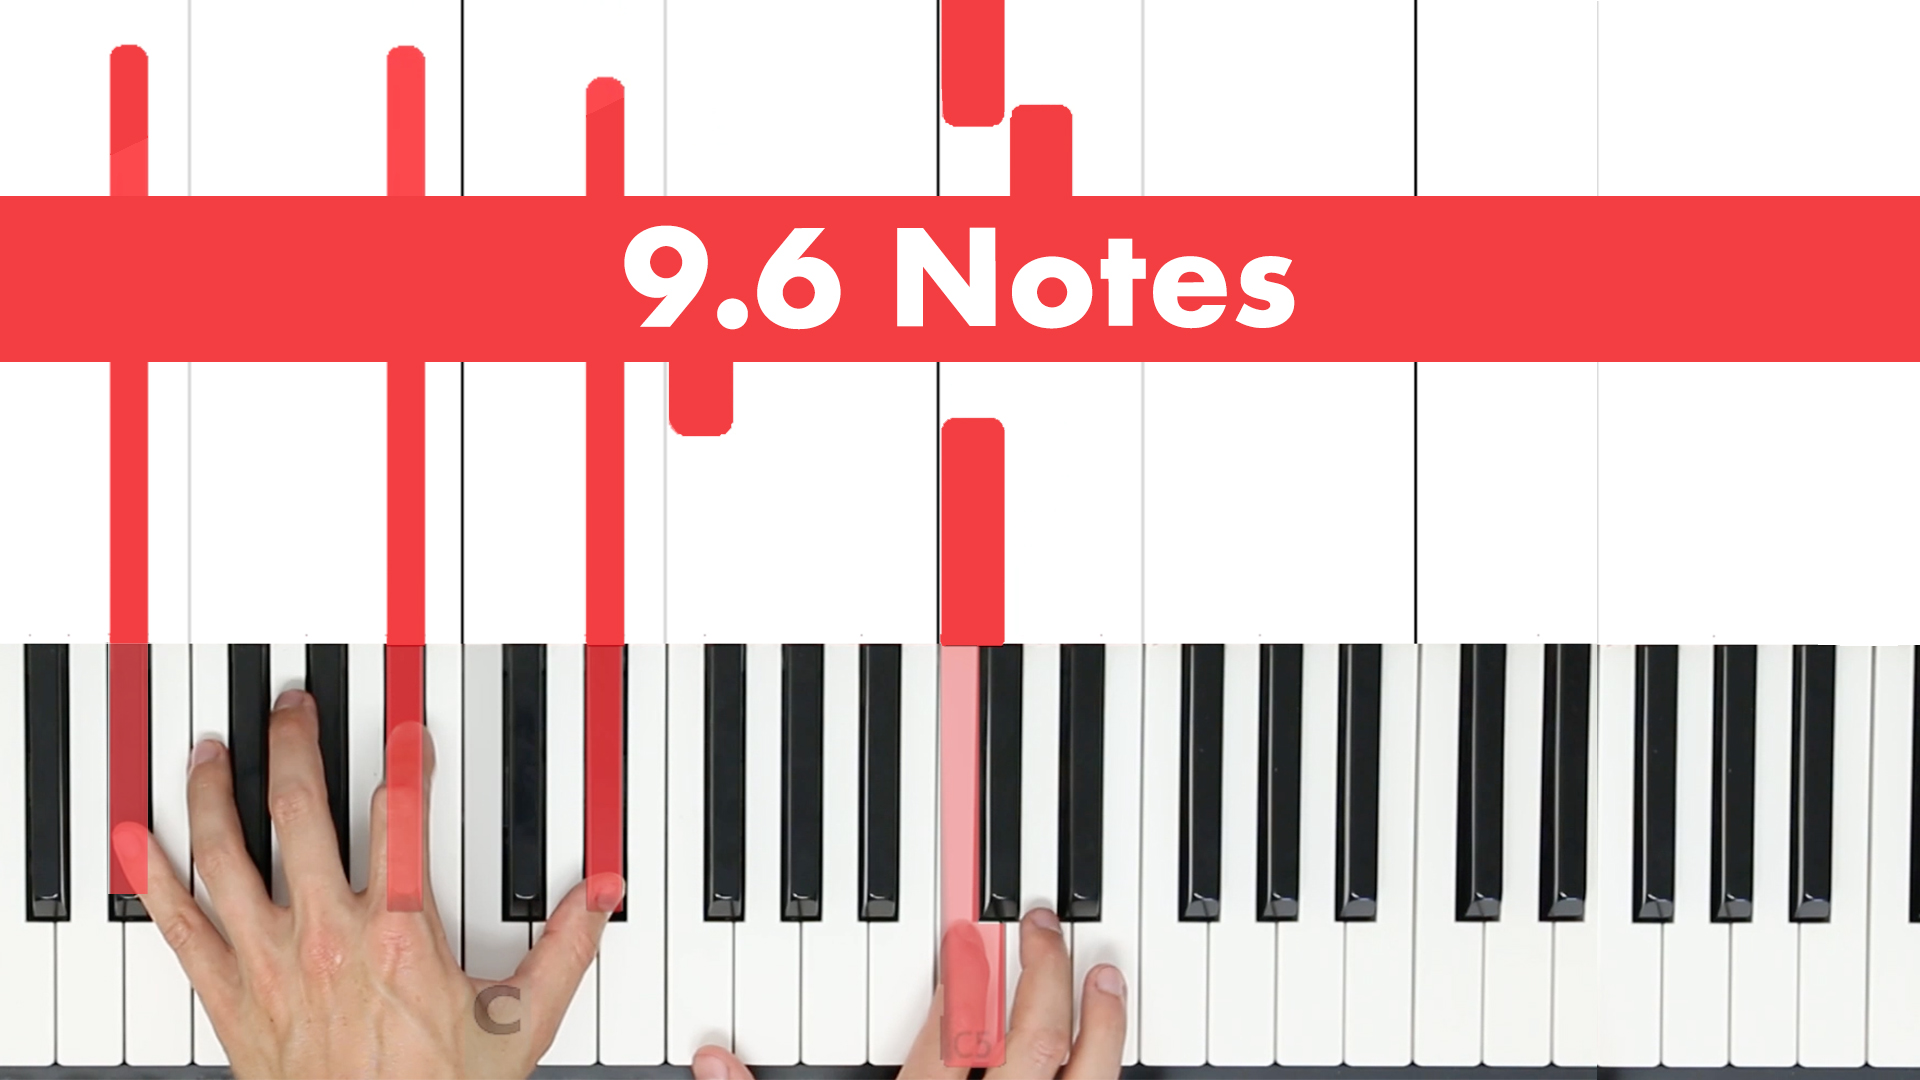 9.6 Notes